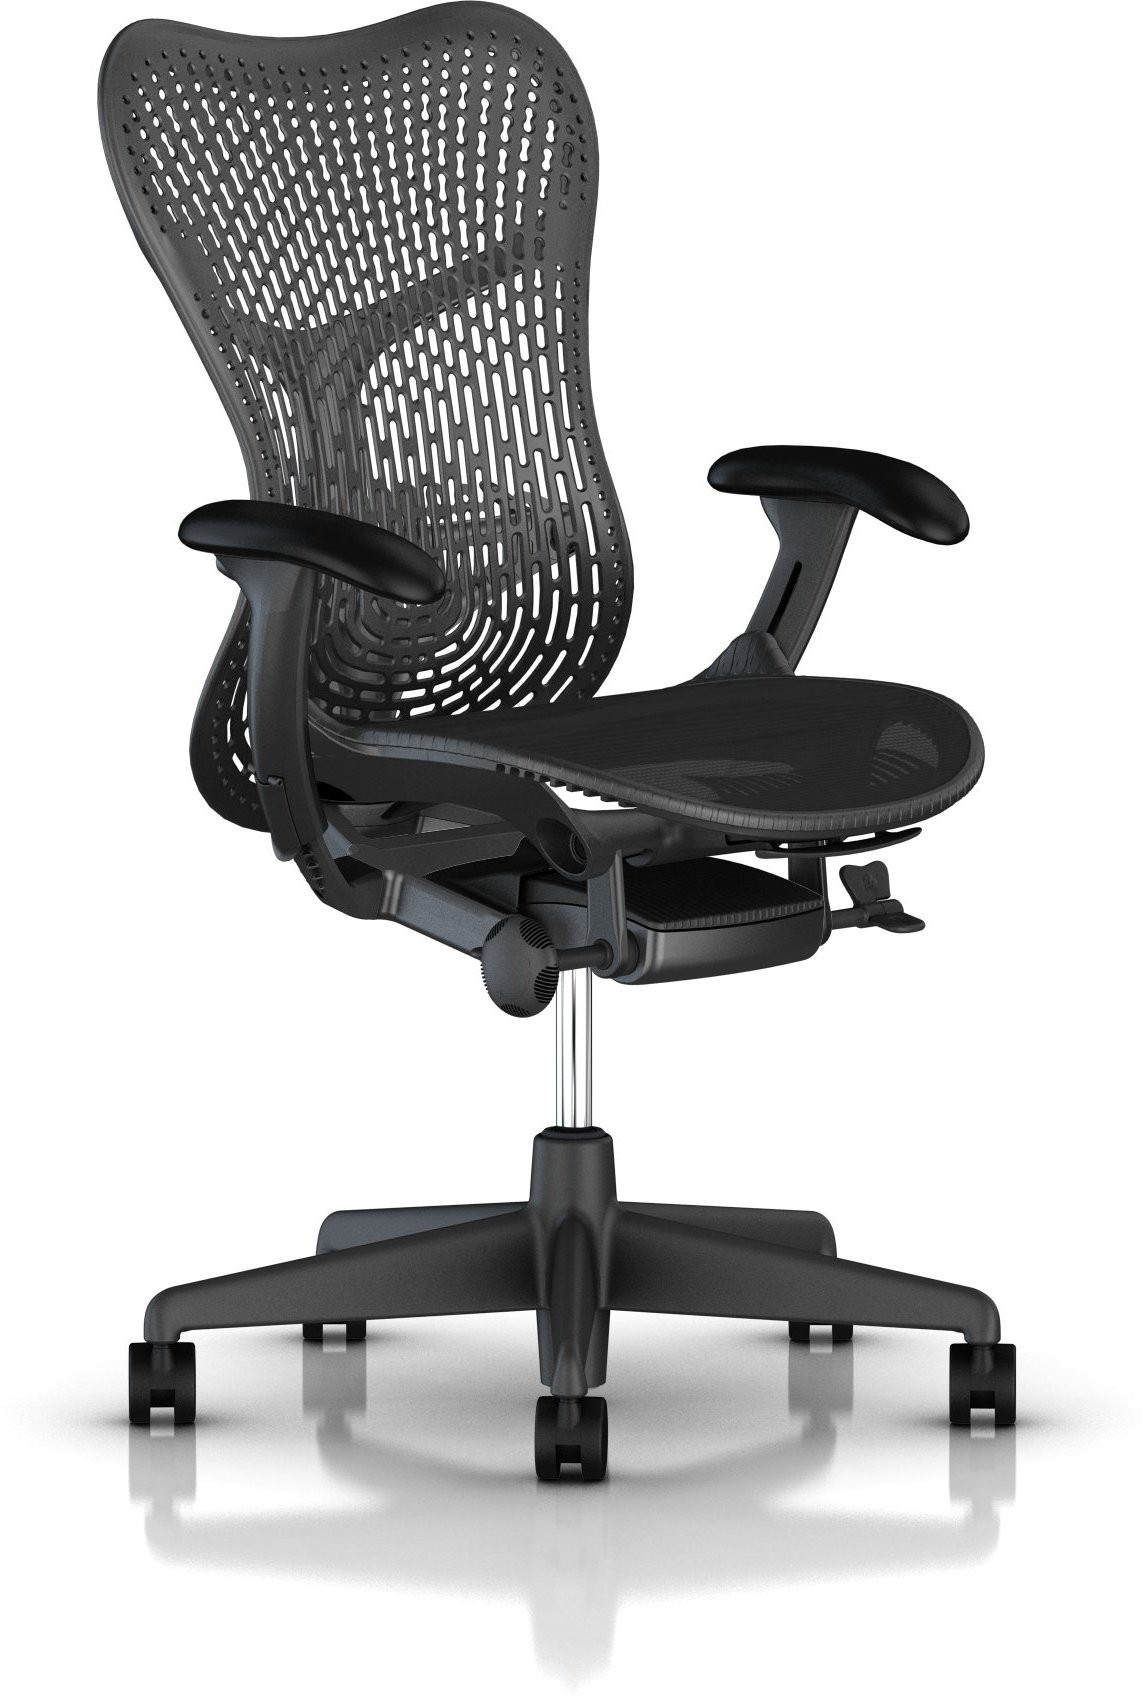 View HermanMiller Mirra 2 - Graphite Triflex back : Graphite Seat : Triflex Polymer NA Office Chair(Black) Furniture (HermanMiller)